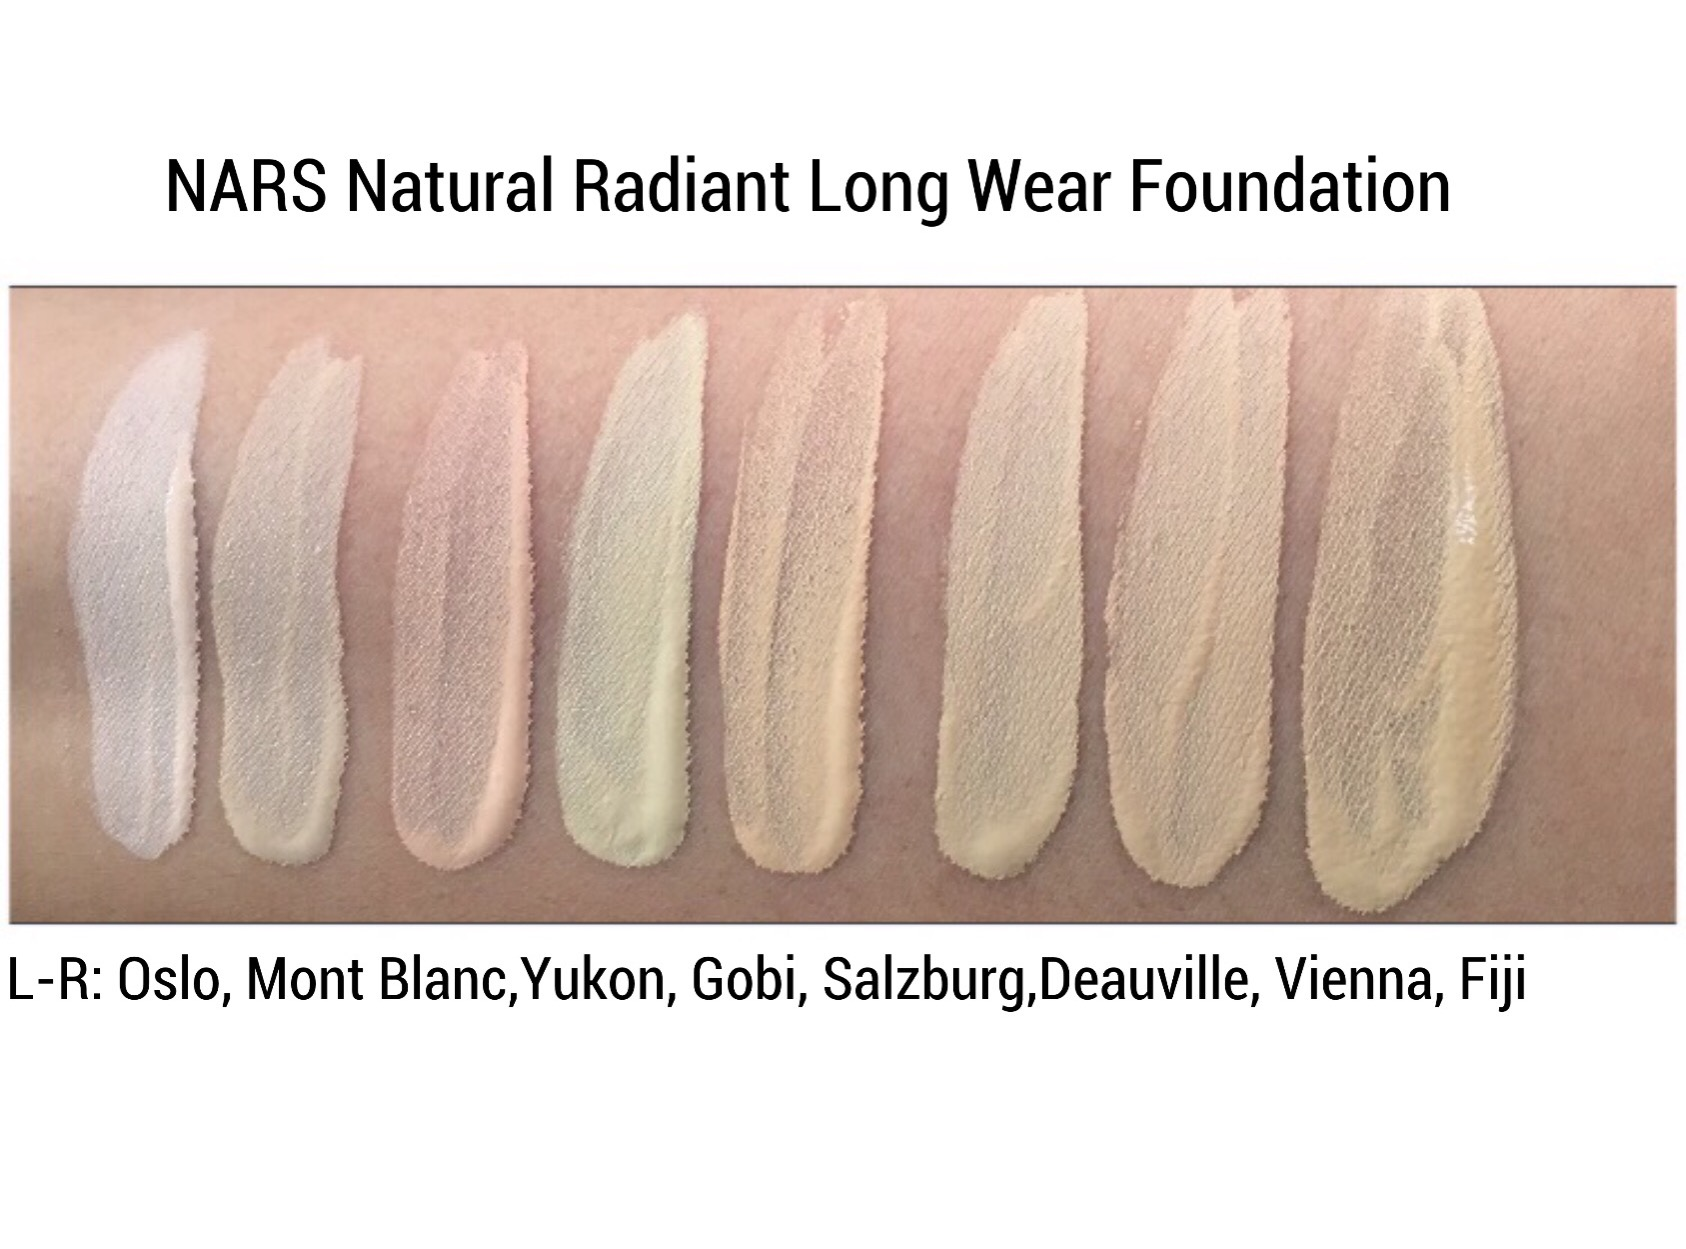 NARS NATURAL RADIANT LONG WEAR FOUNDATION REVIEW SWATCHES  www.calibeaute.com ... 229d2139880ea